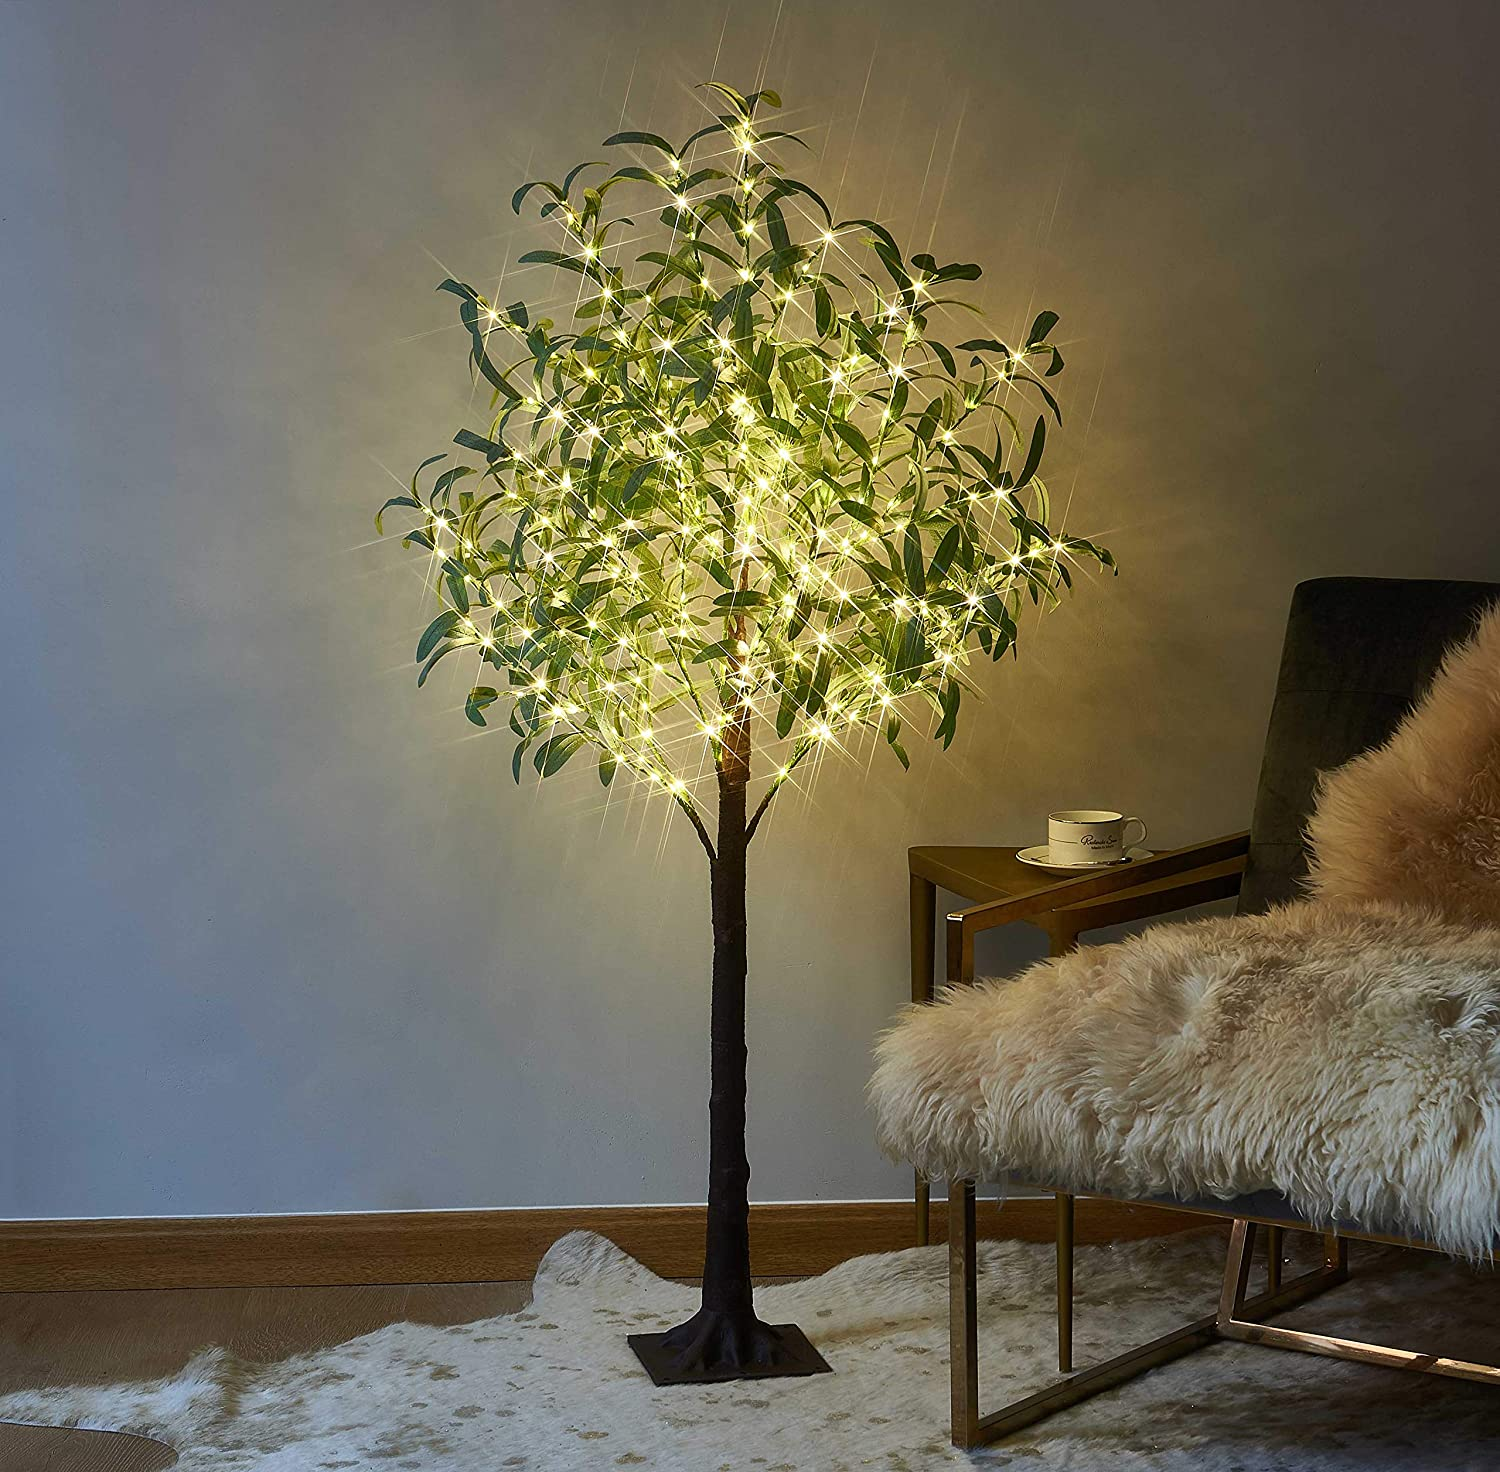 Hairui Lighted - Olive - Tree - Plug-in 4FT 160 Warm White LEDs Artificial Greenery with Lights for Wedding Holiday Home Party Decoration